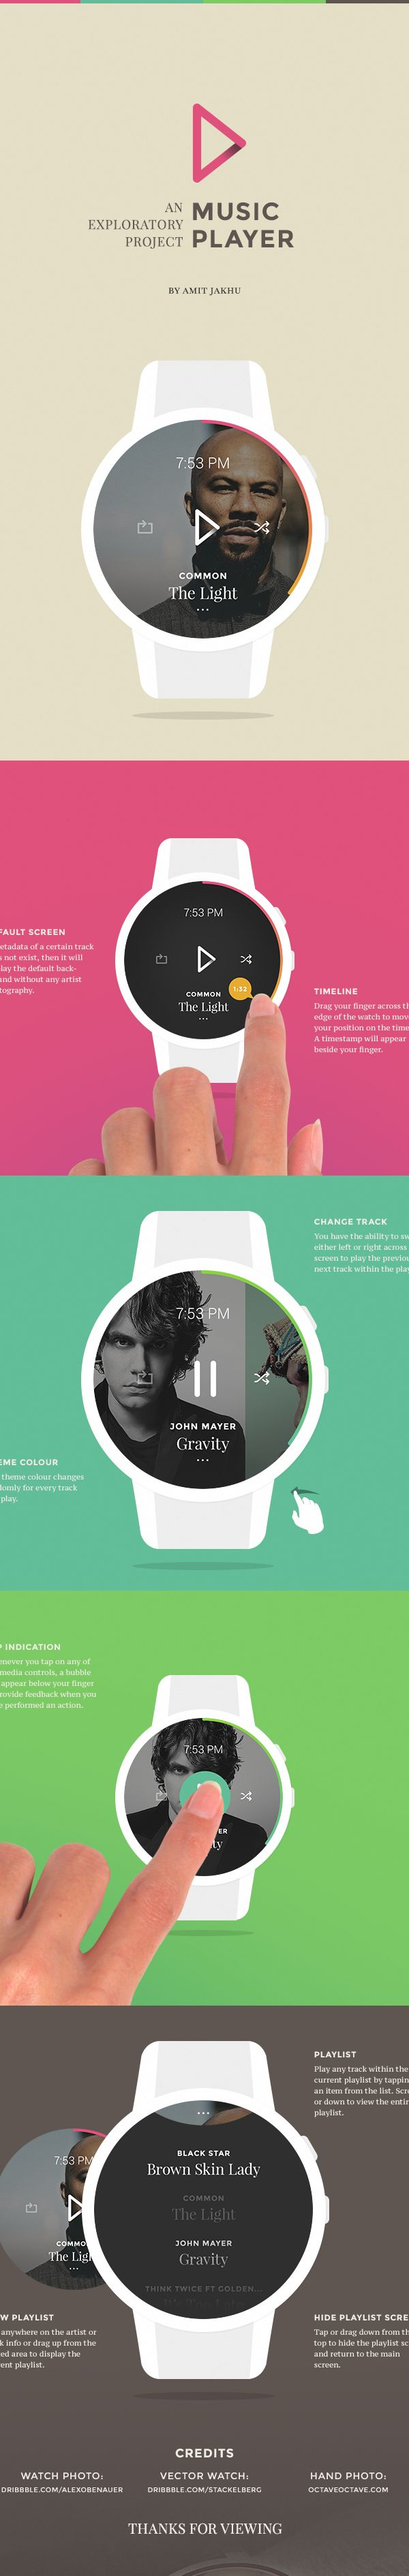 Smartwatch Music App (Concept) by Amit Jakhu, via Behance